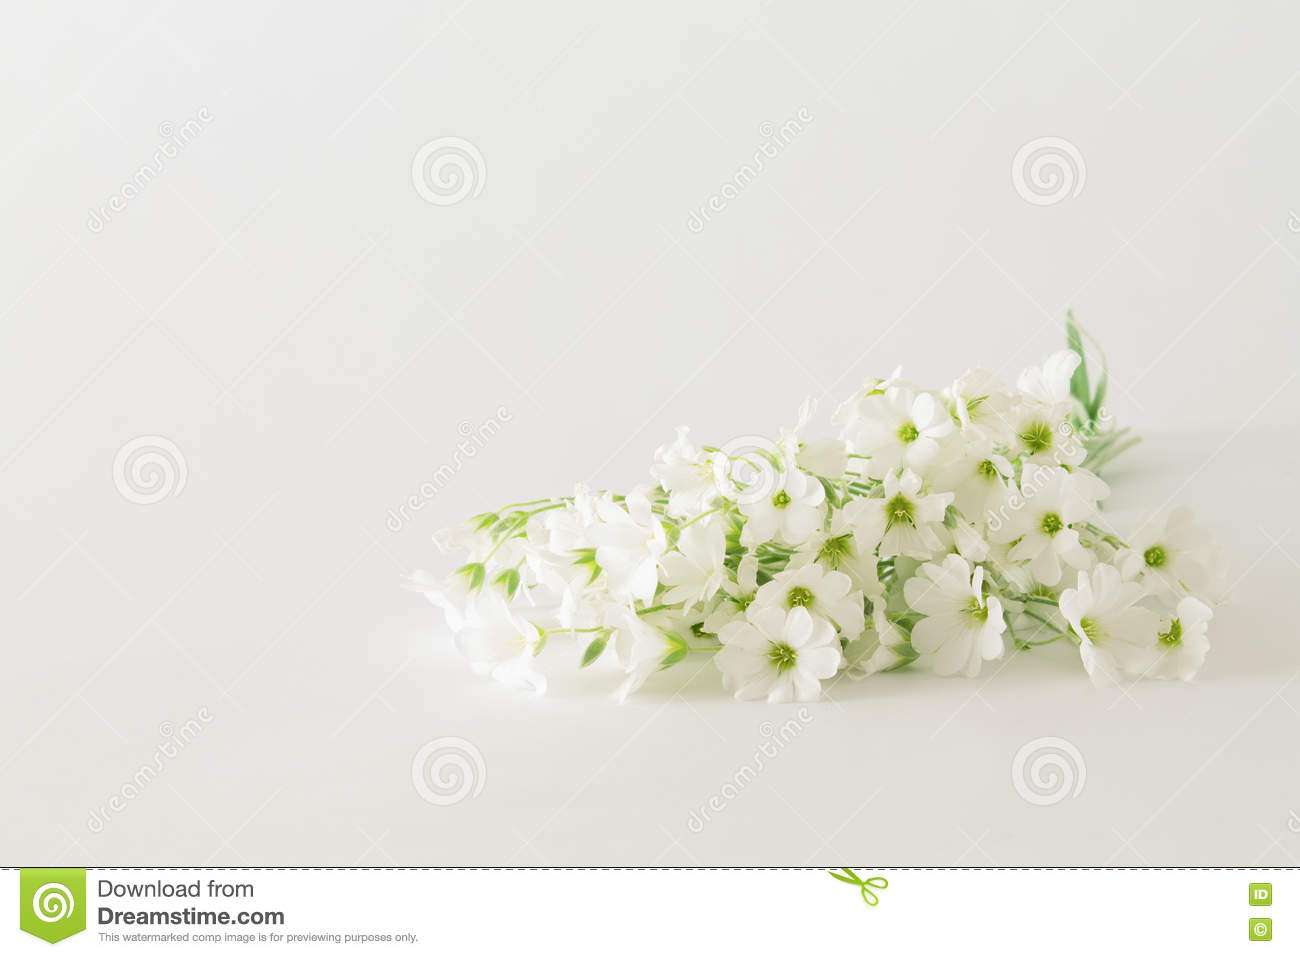 Bouquet of small white flowers on a white background stock photo download bouquet of small white flowers on a white background stock photo image of beautiful izmirmasajfo